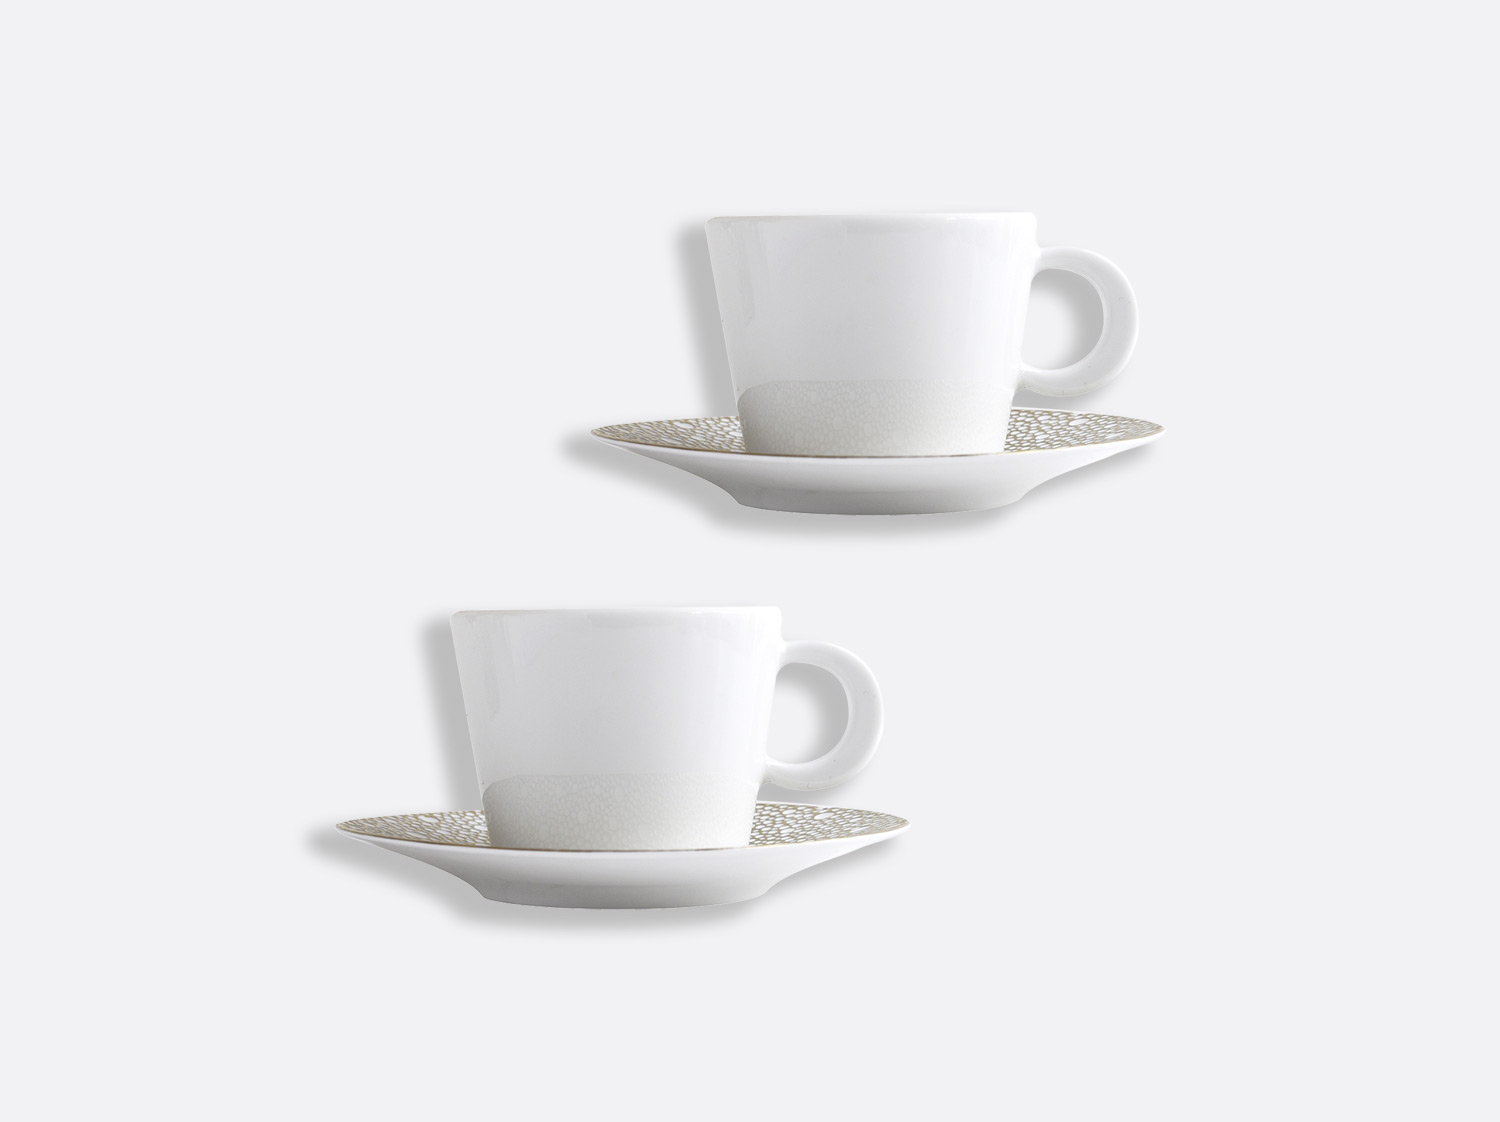 Coffret de tasses & soucoupes thé 17 cl - Coffret de 2 en porcelaine de la collection Ecume Mordoré Bernardaud